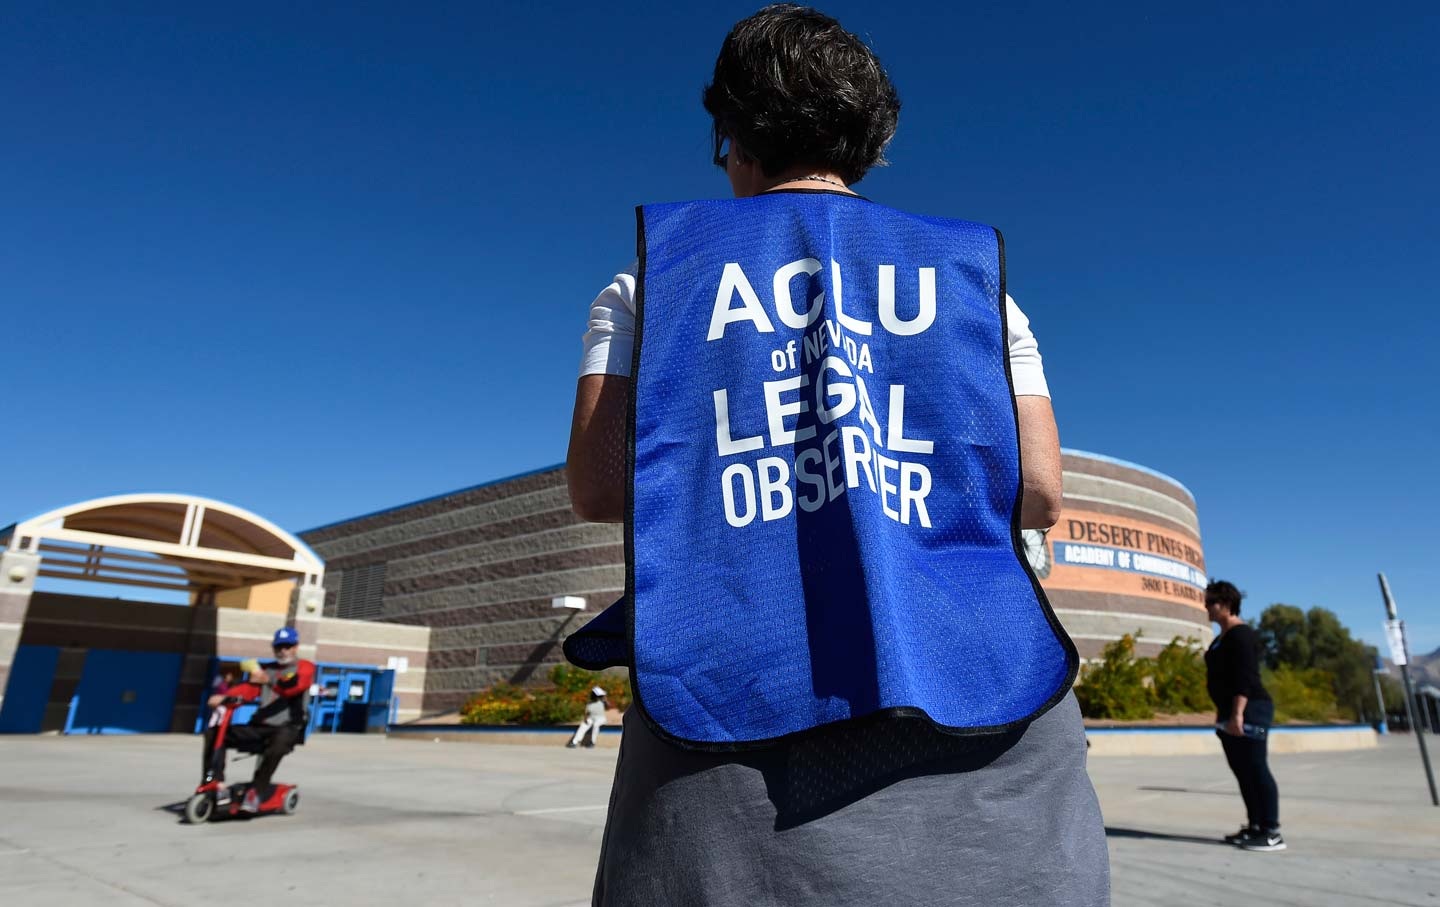 ACLU National Election